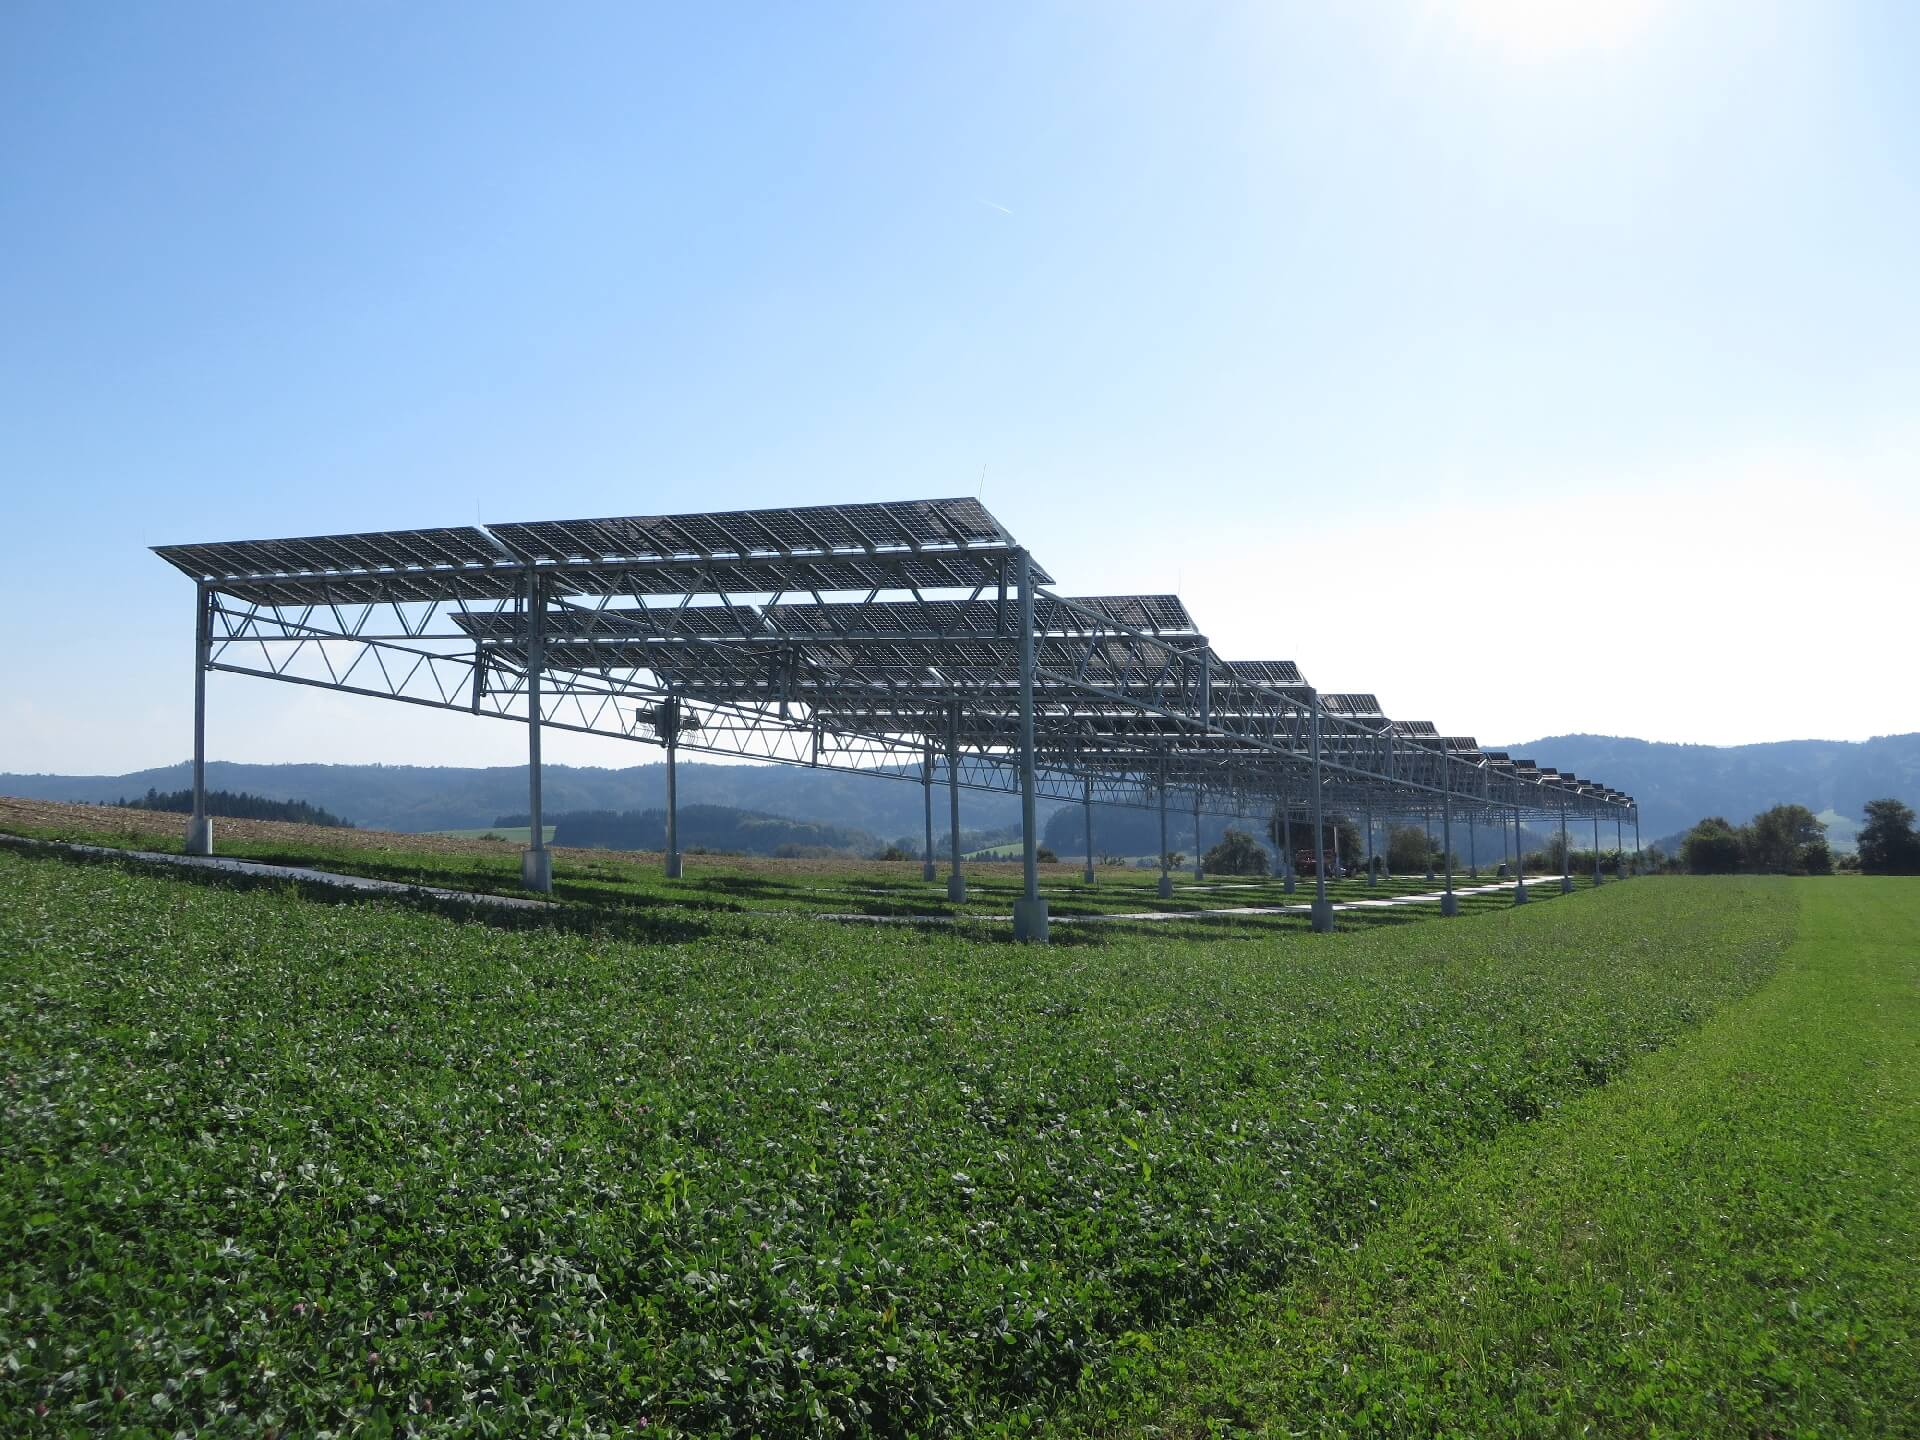 The agrophotovoltaics (APV) pilot plant located in Heggelbach near Lake Constance